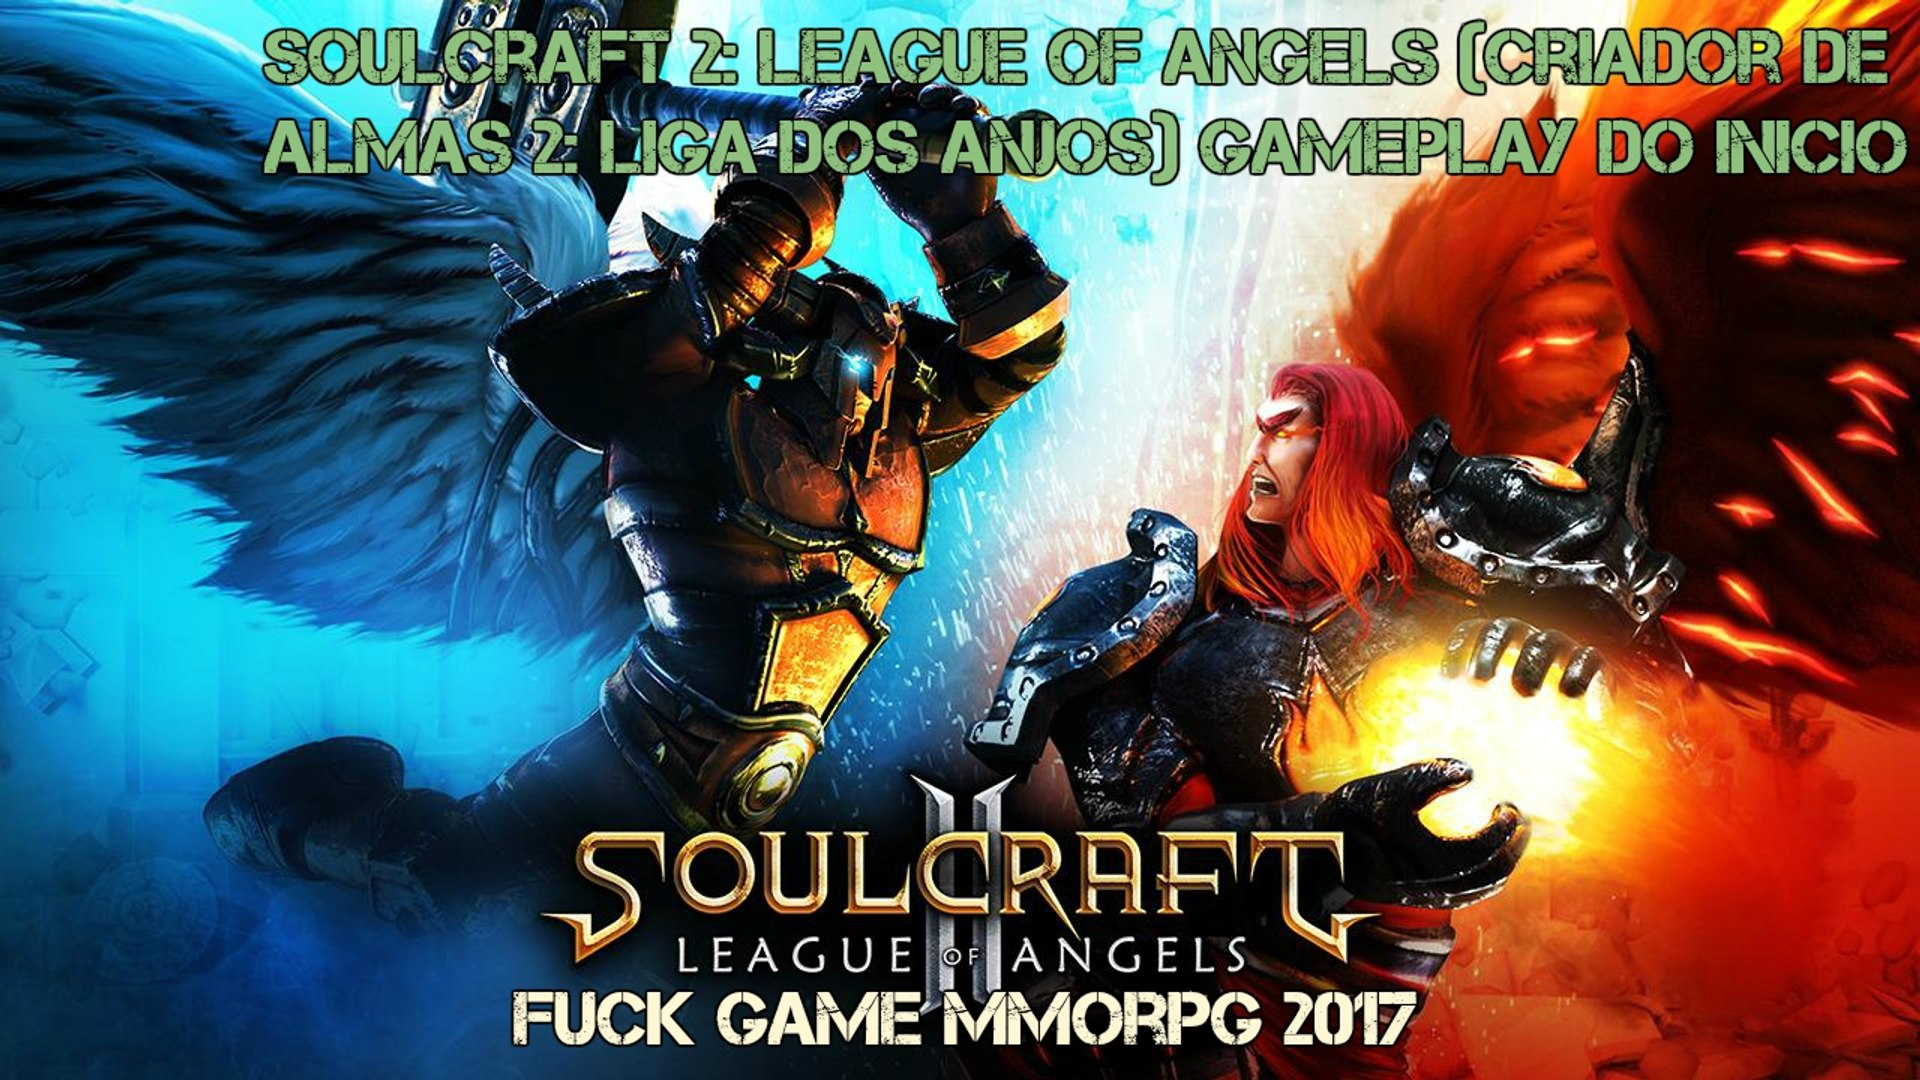 Soulcraft 2- League of angels %28Criador de almas 2- Liga dos anjos%29 Gameplay do InicioSoulcraft 2